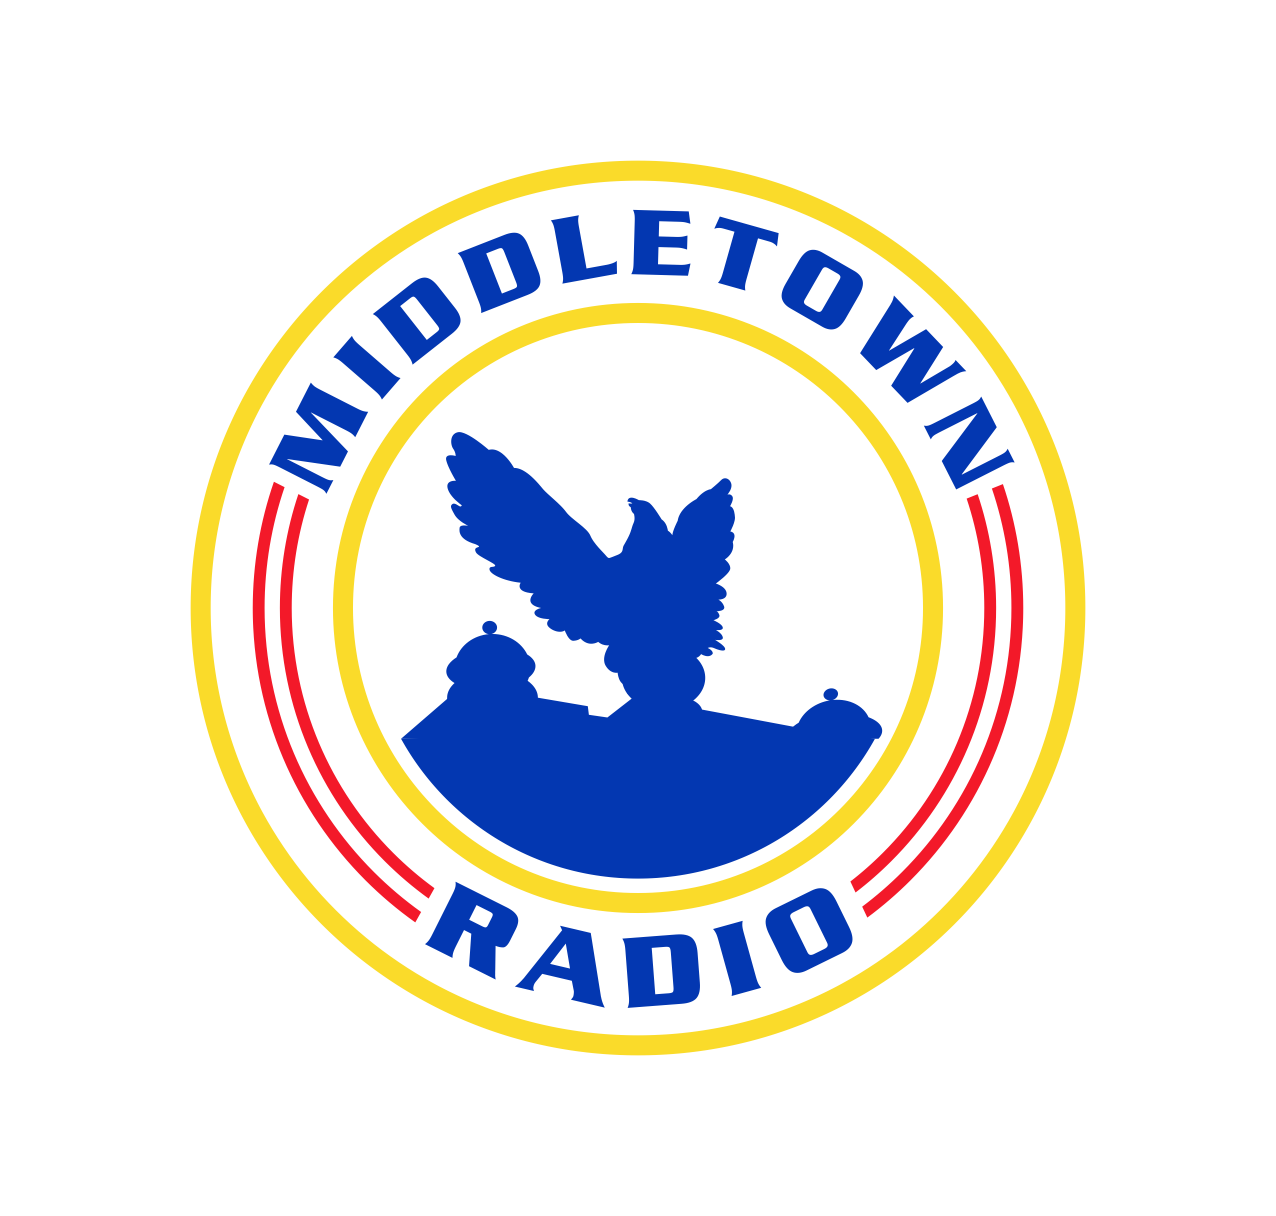 Middletown Radio